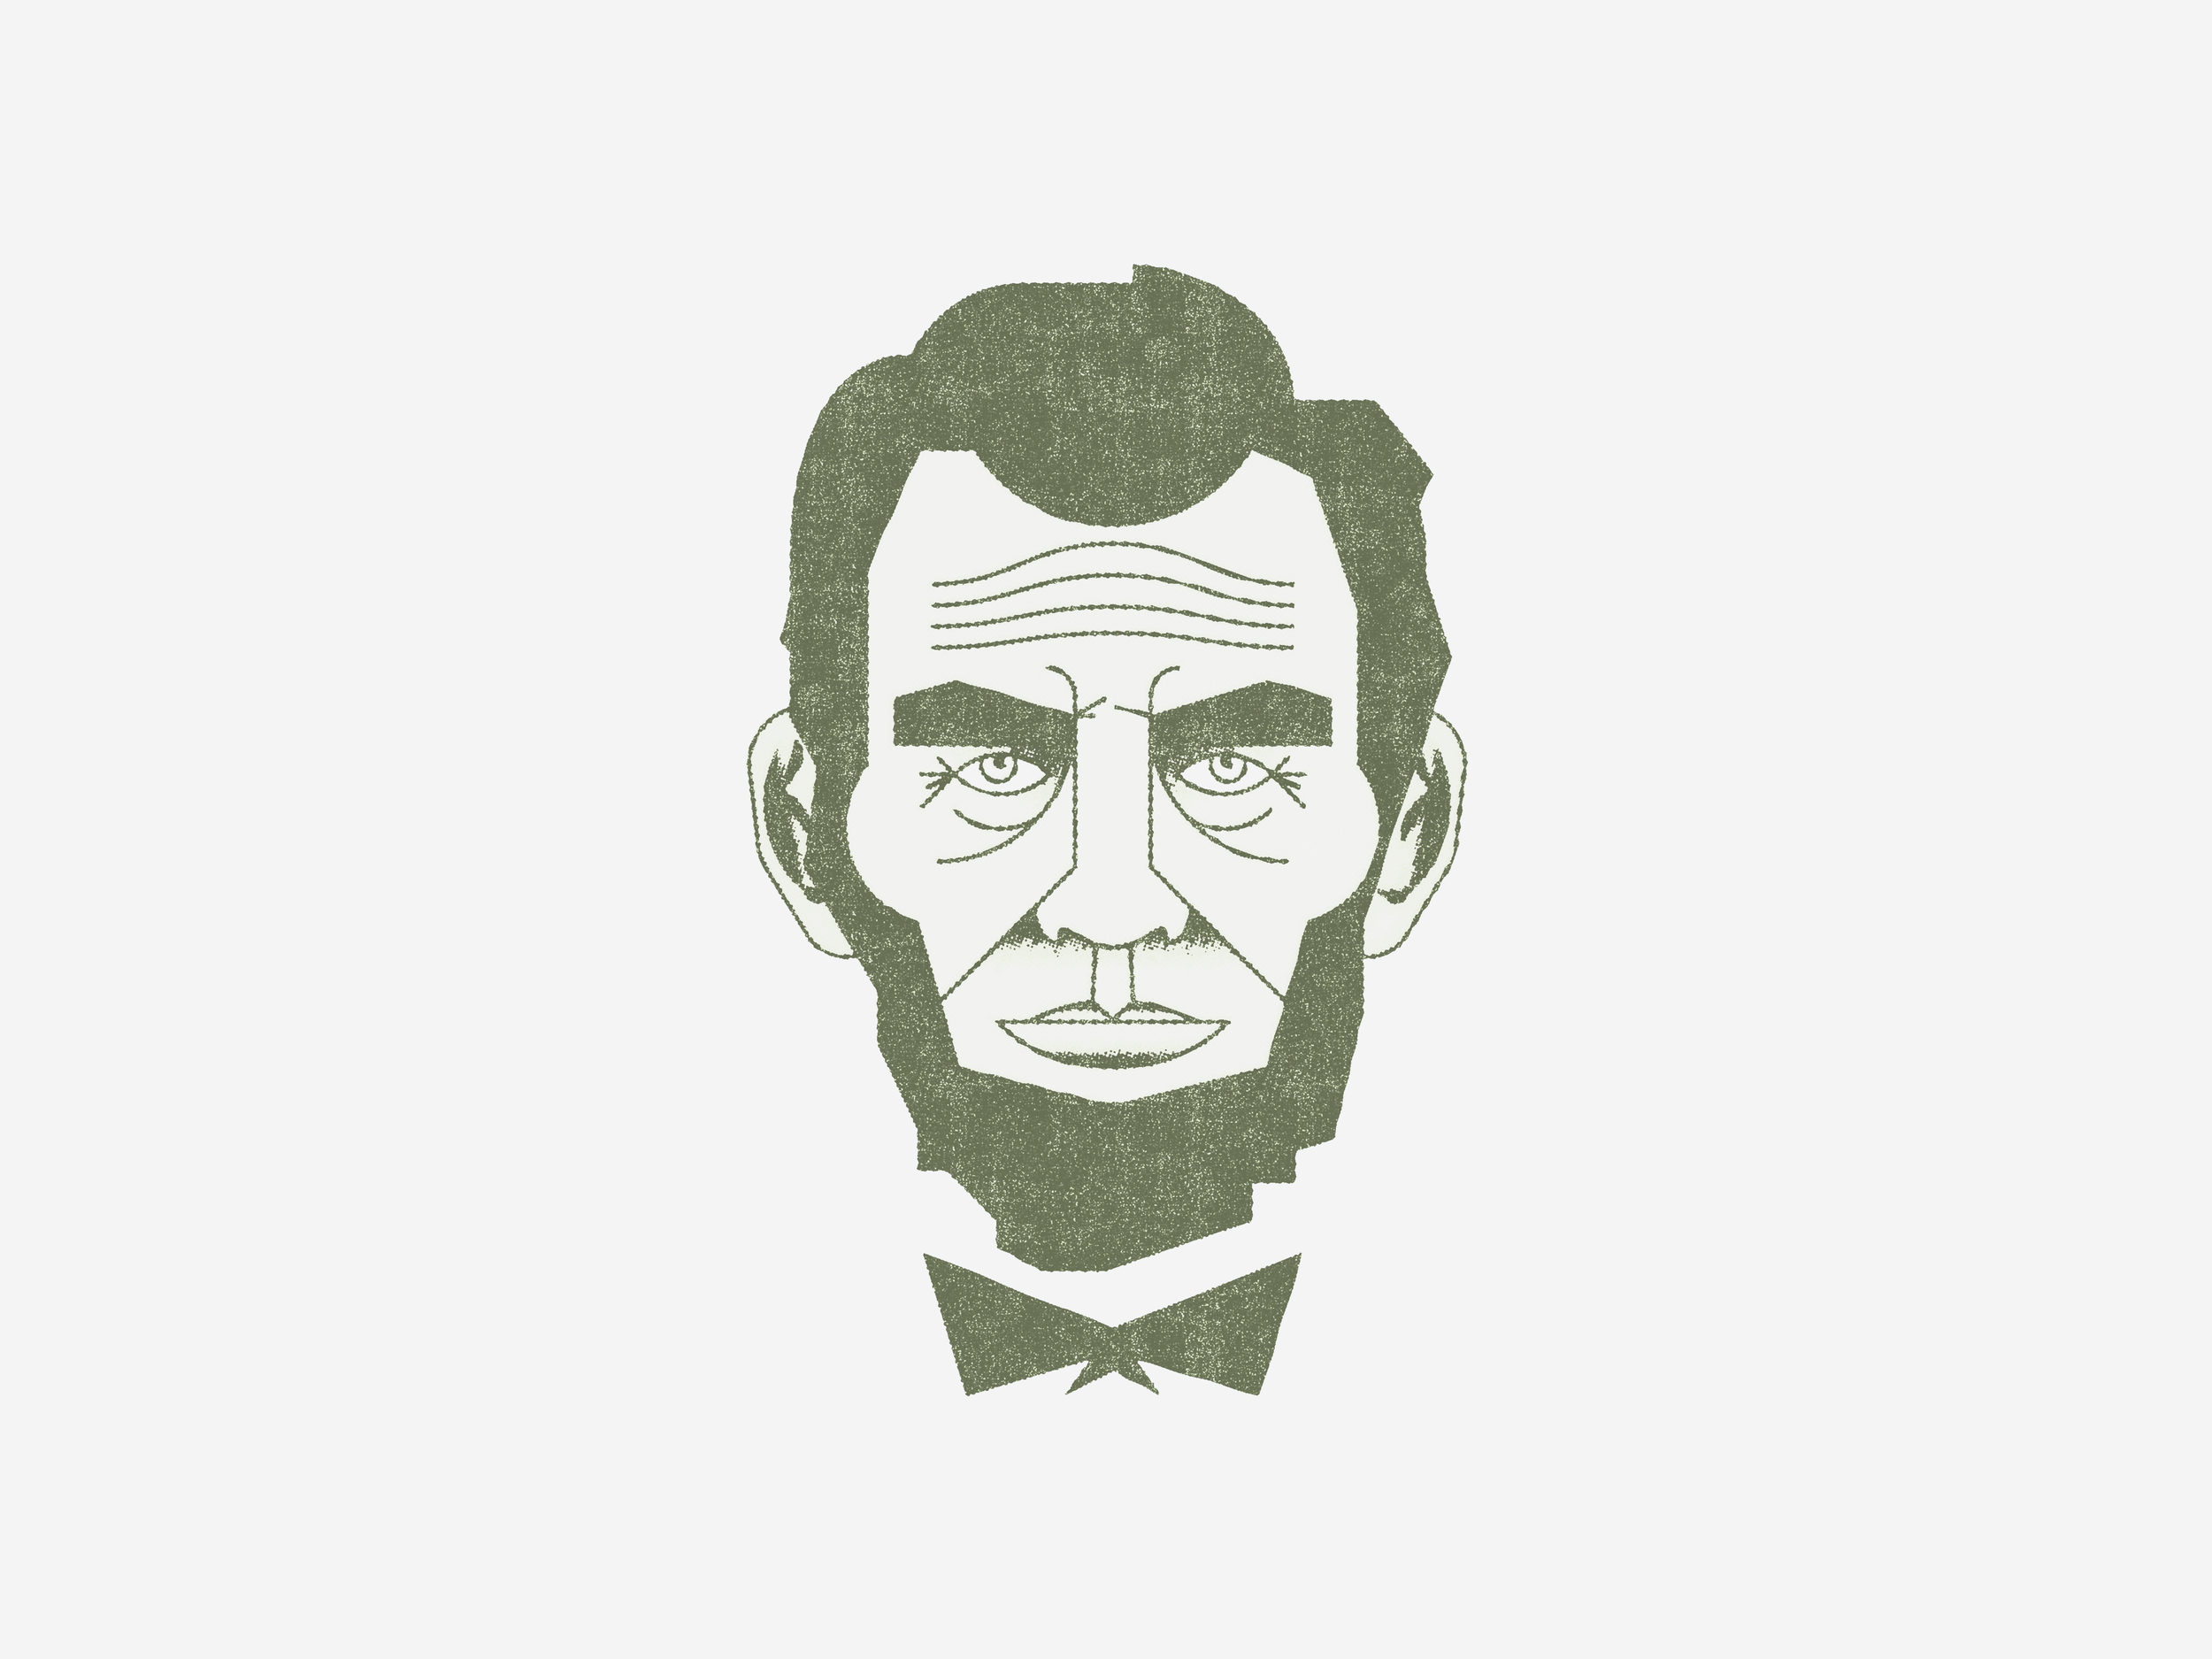 46 Abraham Lincoln illustration.png